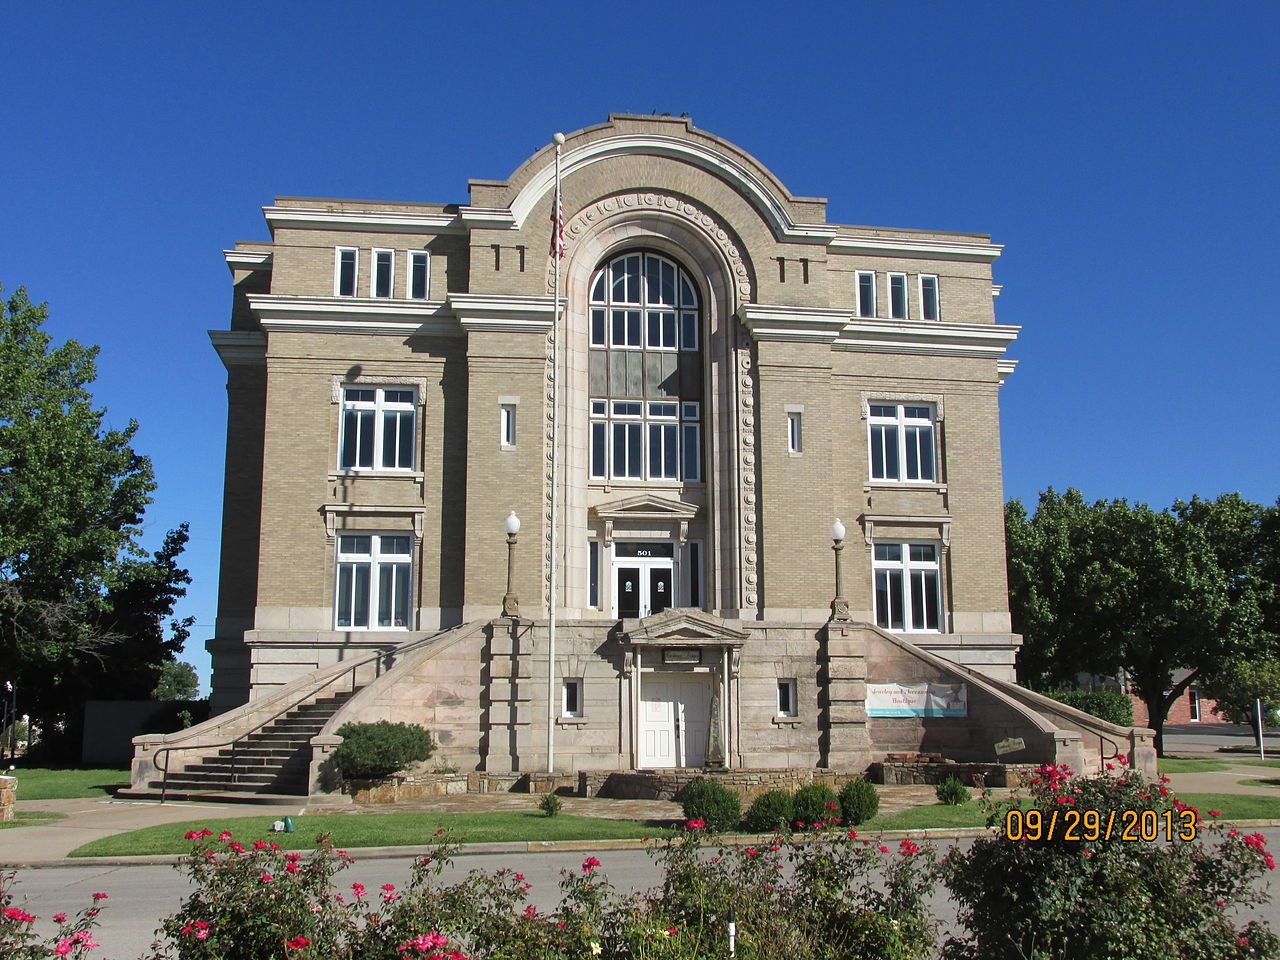 Old Washington County Courthouse in Oklahoma.